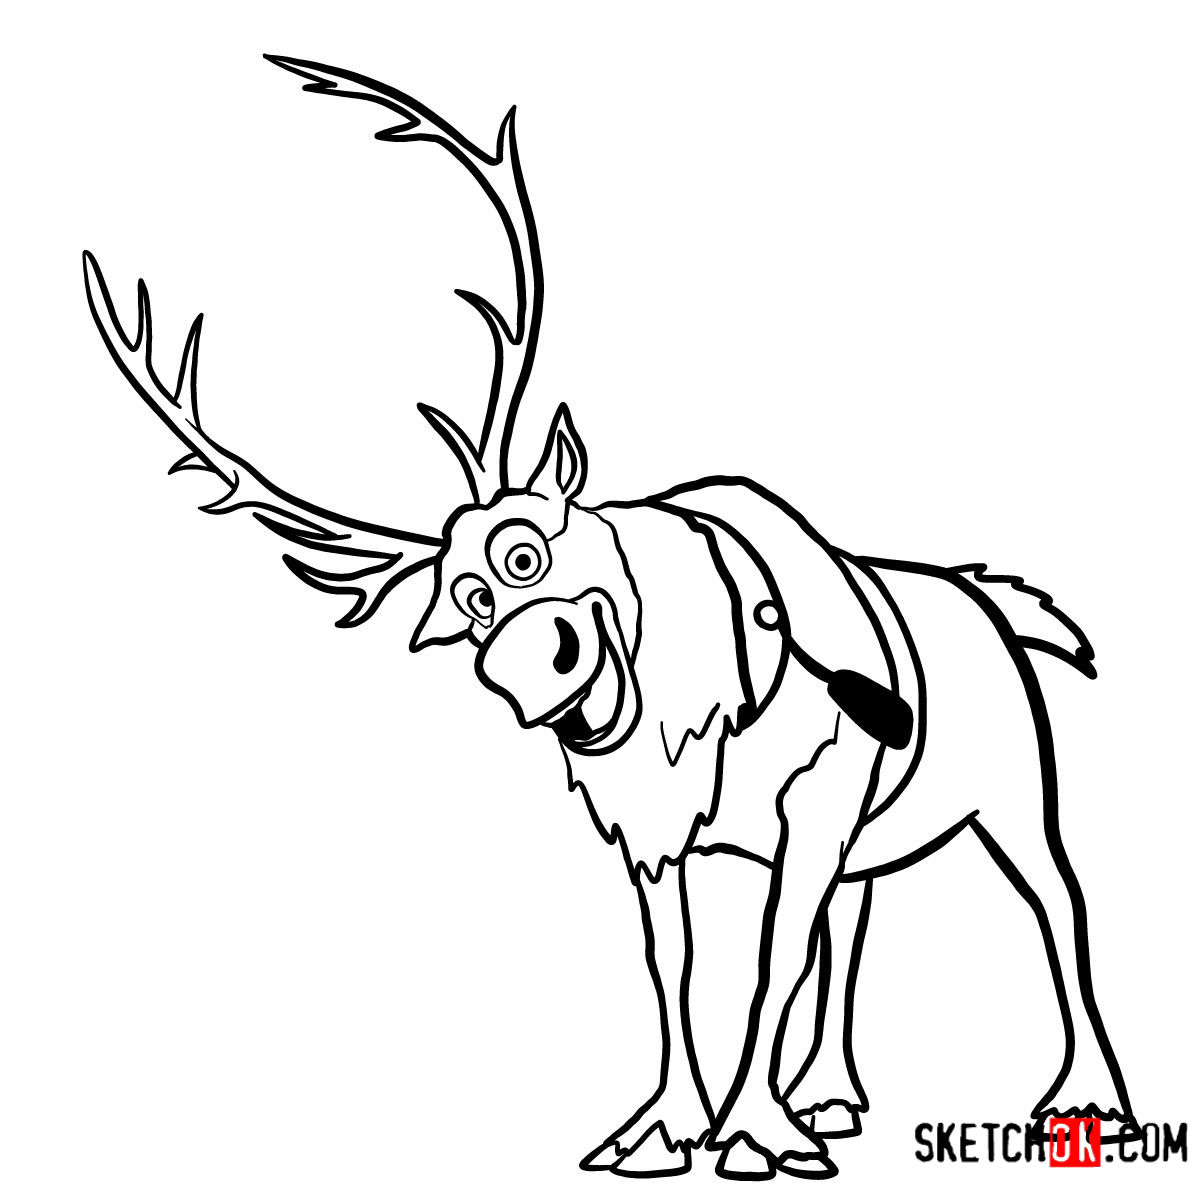 frozen coloring pages sven sven from disney movie frozen coloring page sven from sven pages frozen coloring